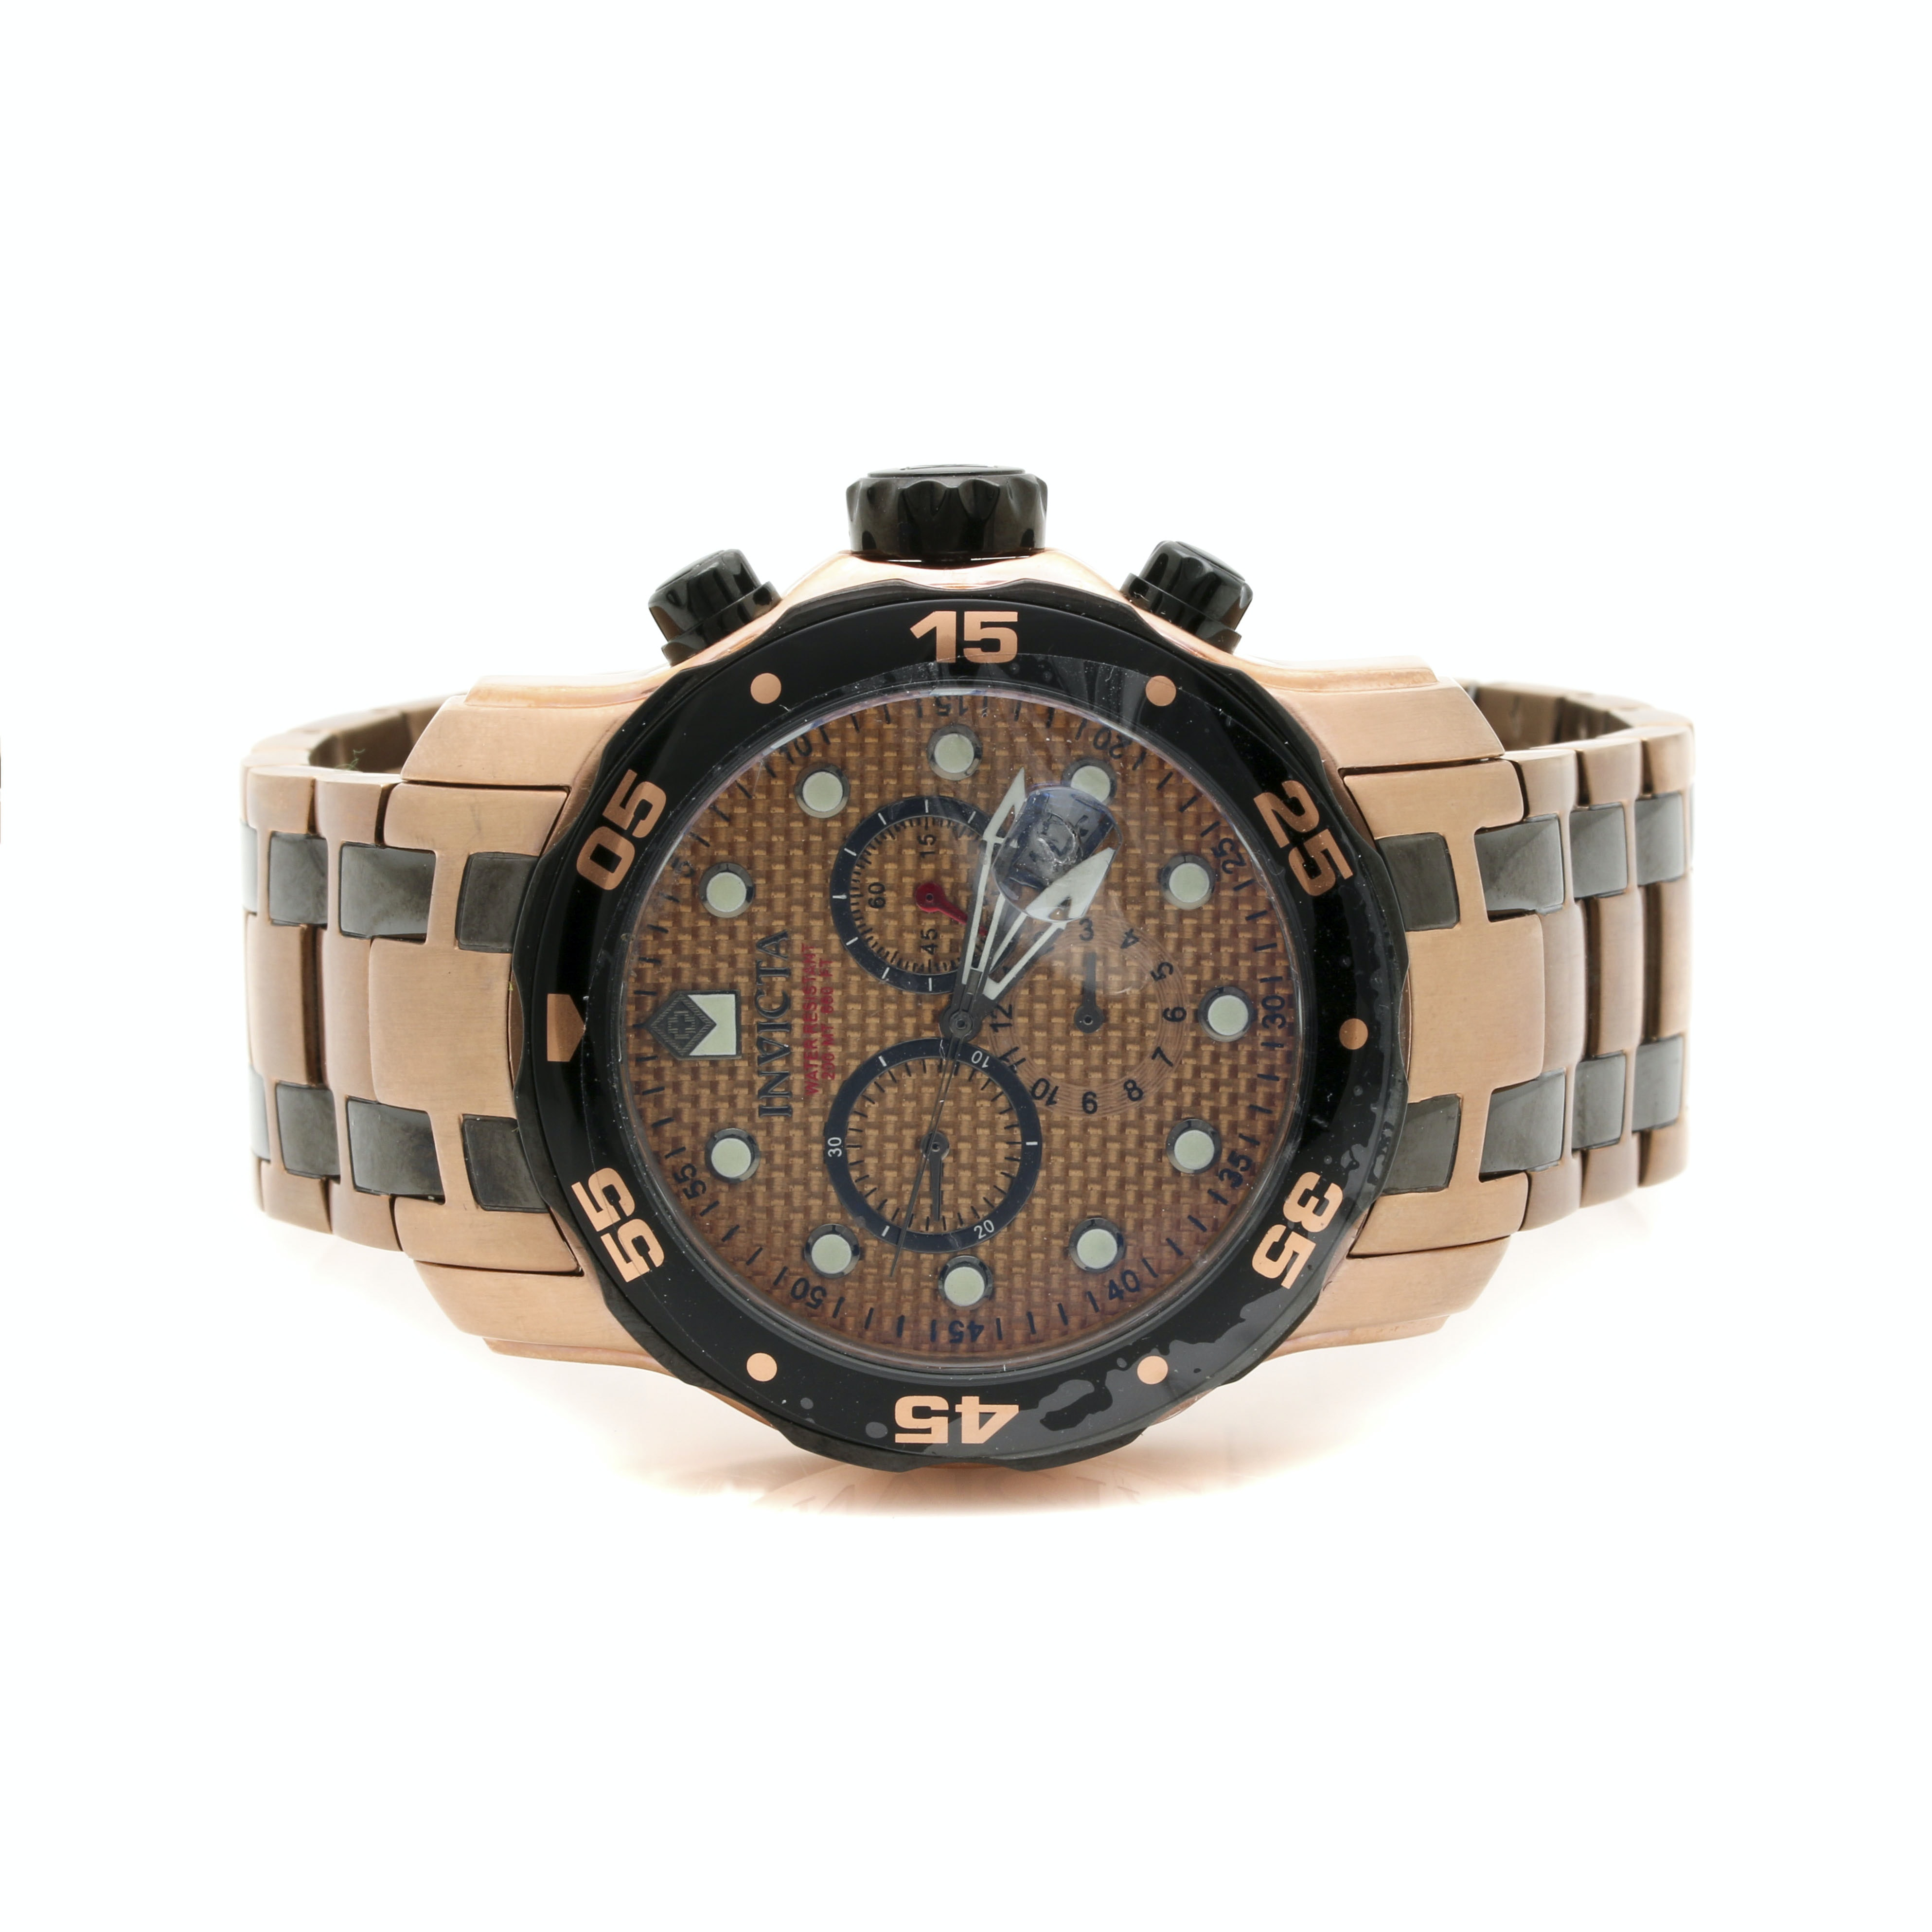 Invicta Pro Diver Copper and Black Tone Stainless Steel Wristwatch